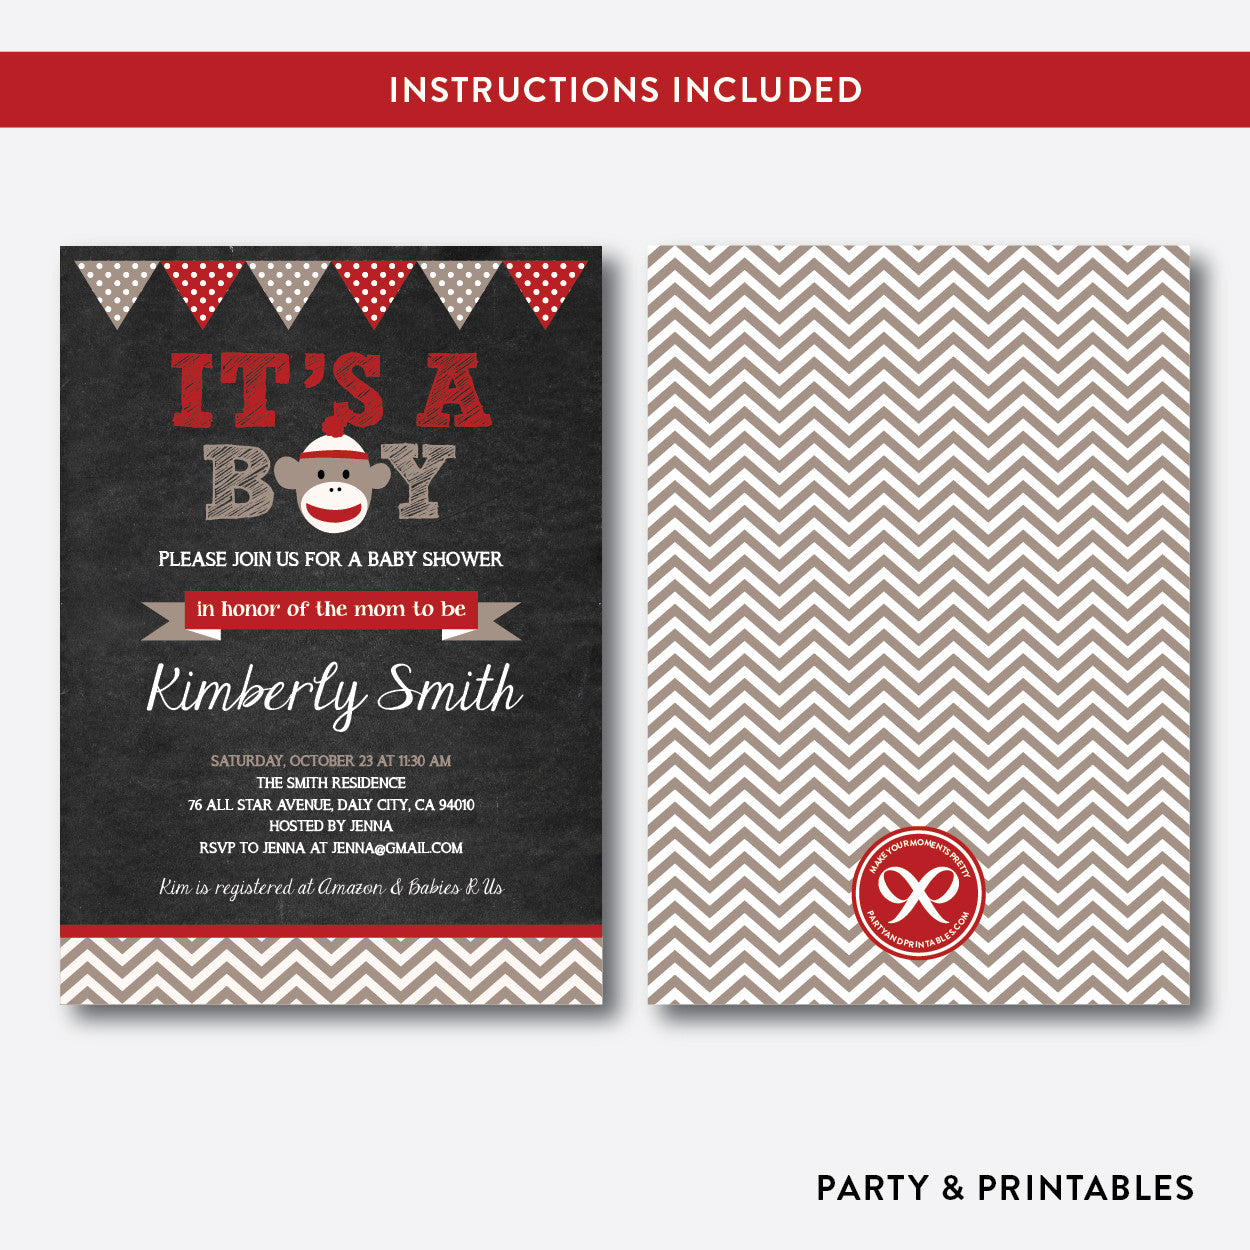 Sock Monkey Chalkboard Baby Shower Invitation / Editable / Instant Download (CBS.05), invitation - Party and Printables